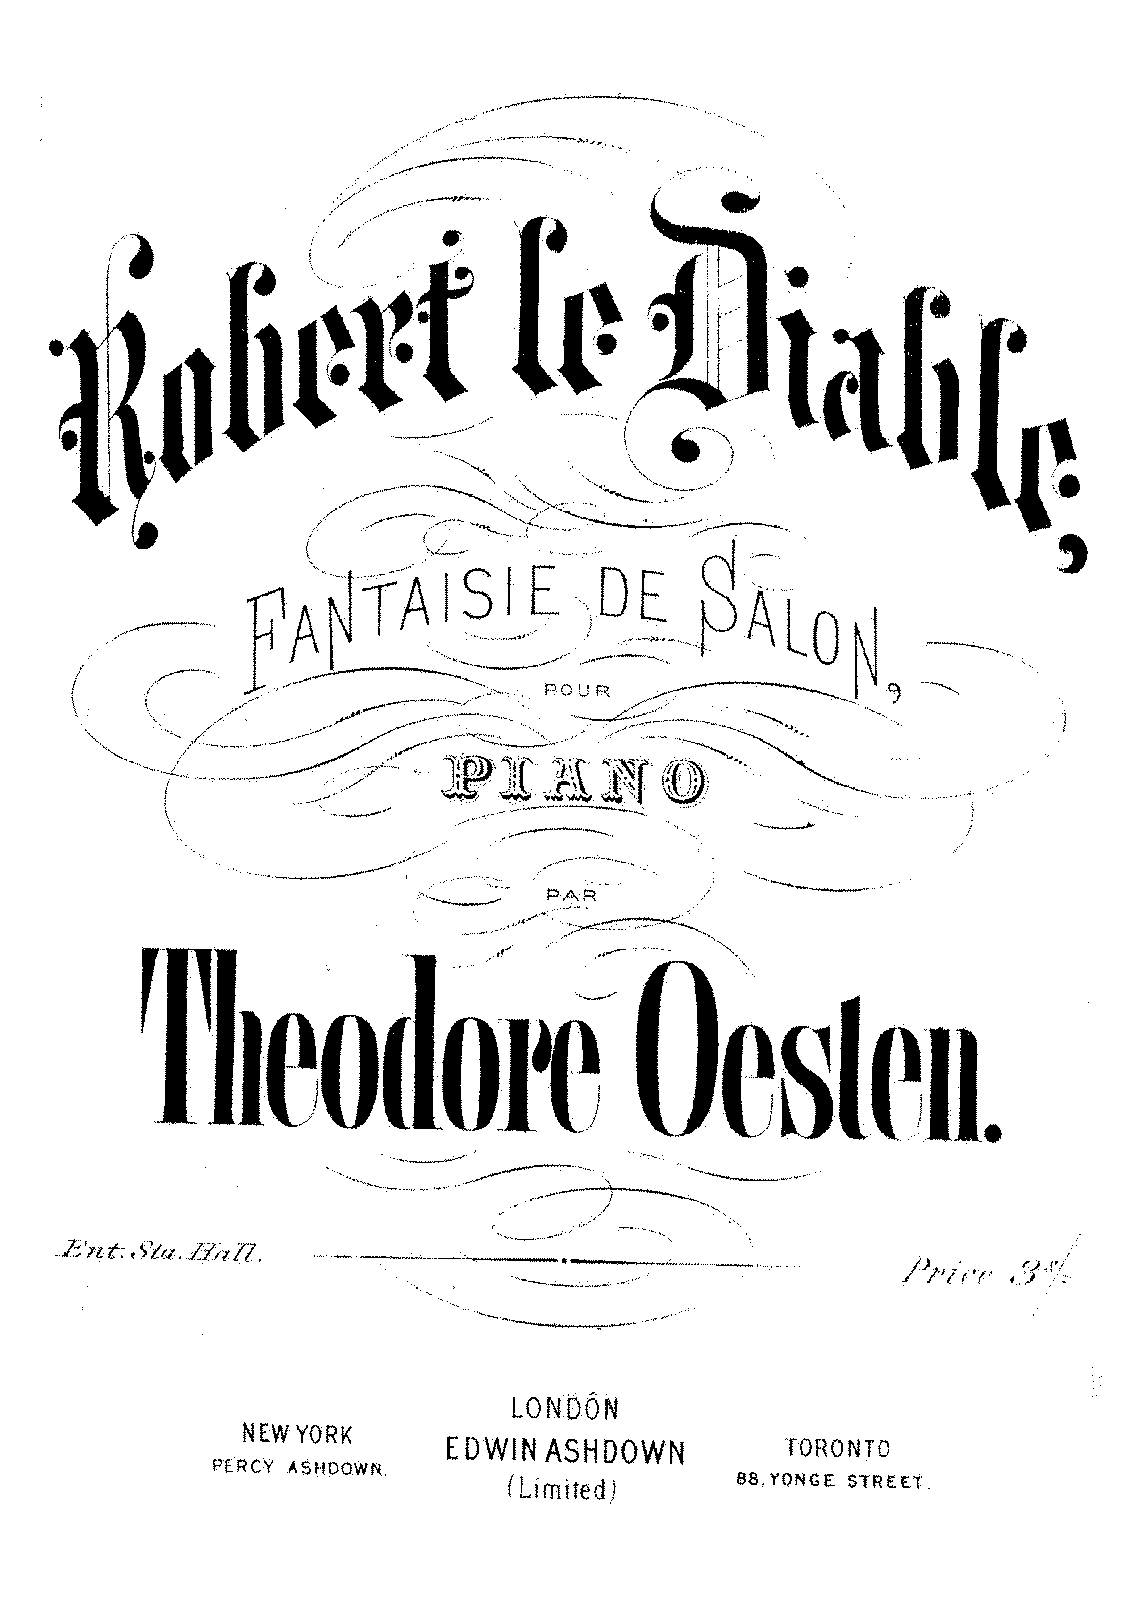 PMLP351844-Oesten - Gems of German Land - Fantaisie de Salon sur Robert le Diable de Meyerbeer.pdf